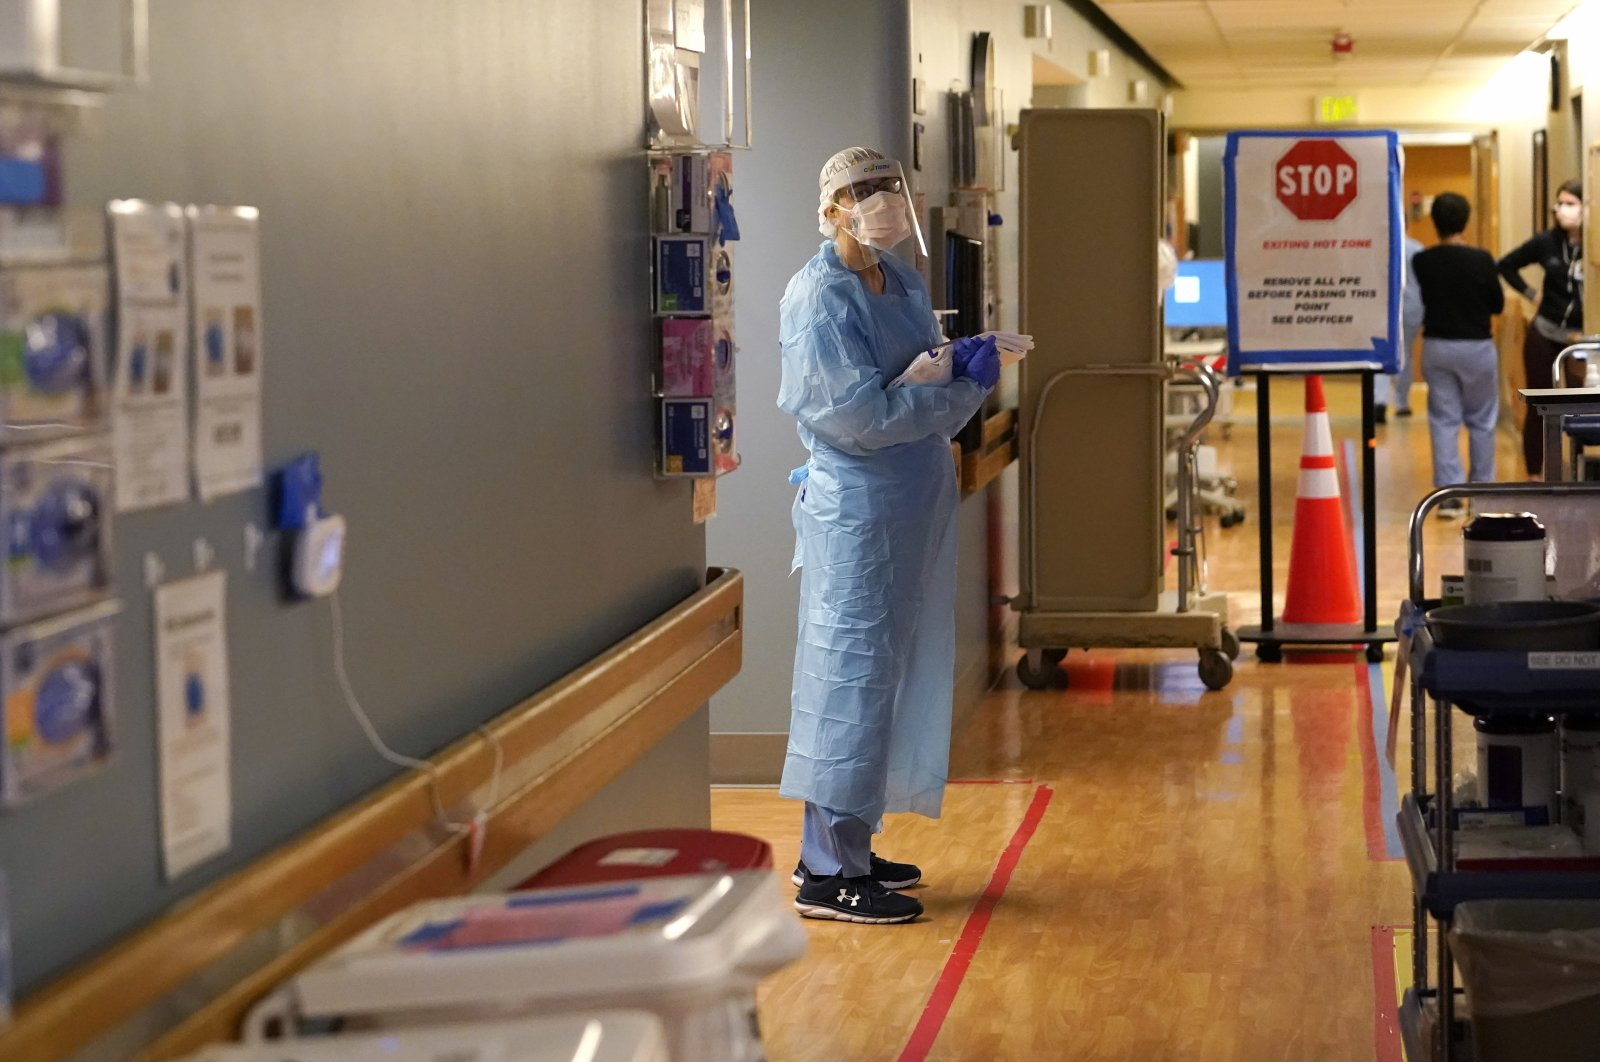 A nurse waits in the COVID-19 acute care unit at UW Medical Center, Seattle, United States, Jan. 26, 2021. (AP Photo)